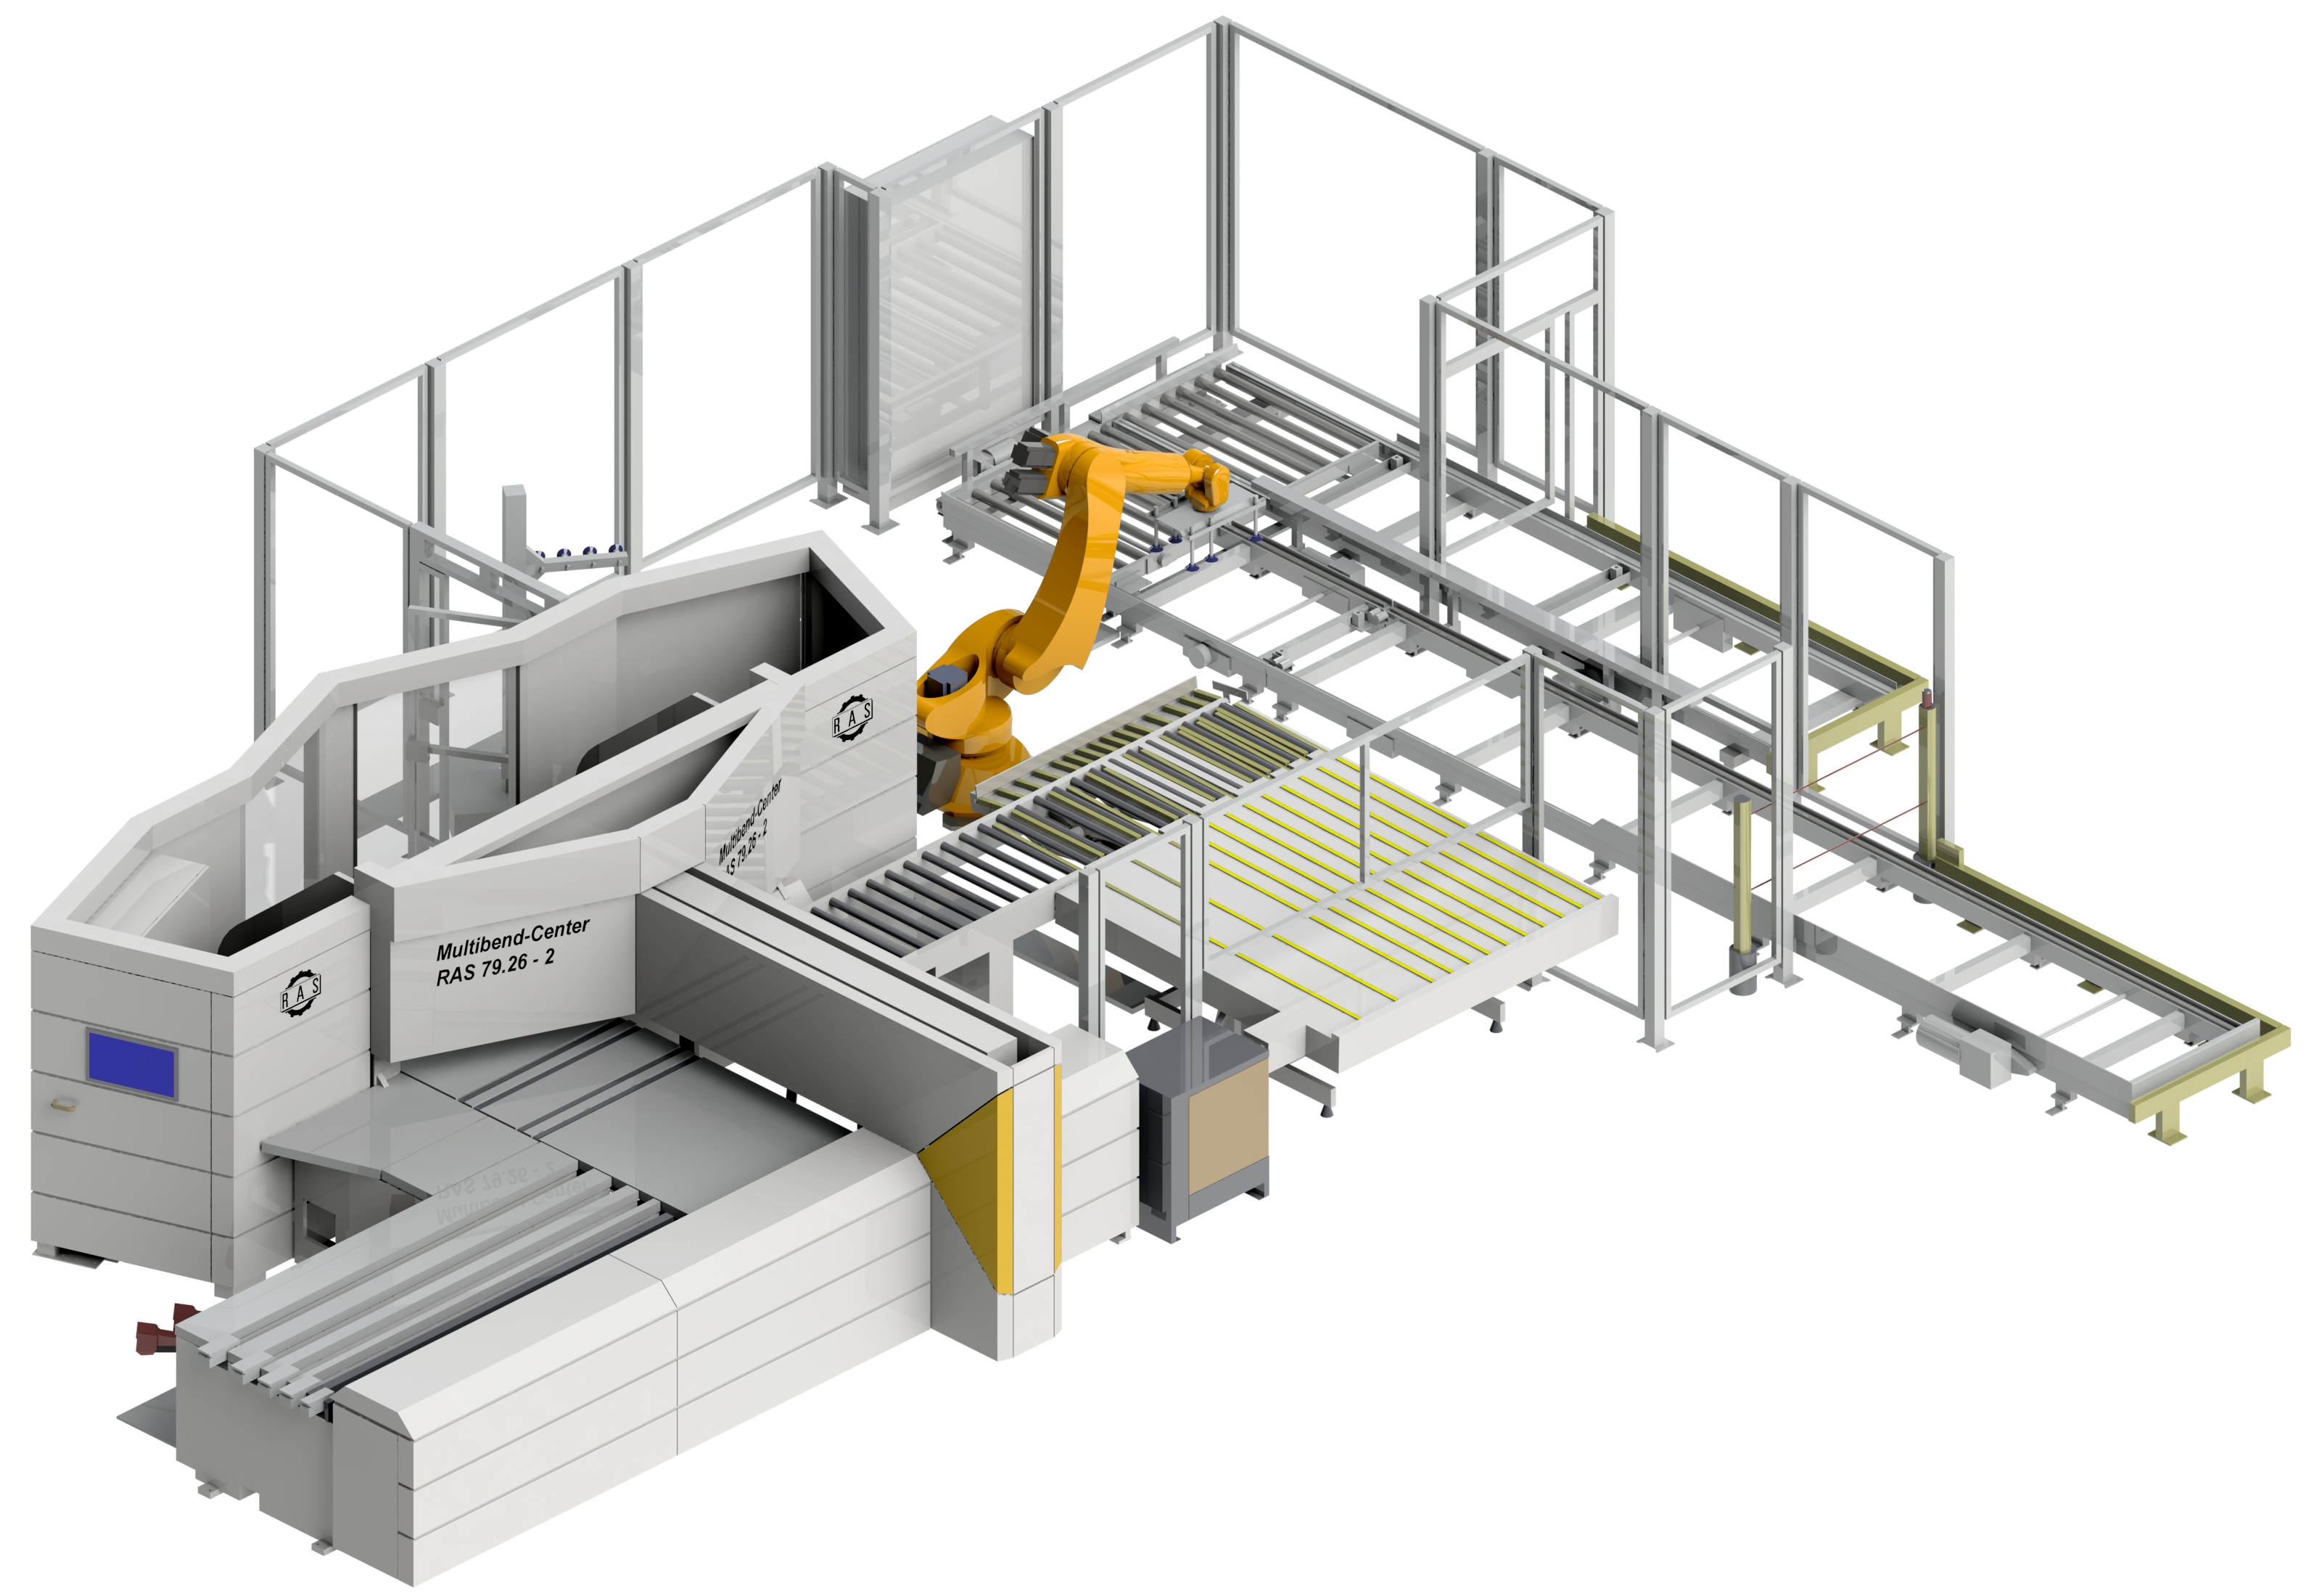 Automatic unloading and stacking of bent parts with an unloading robot. U shape pallet system.